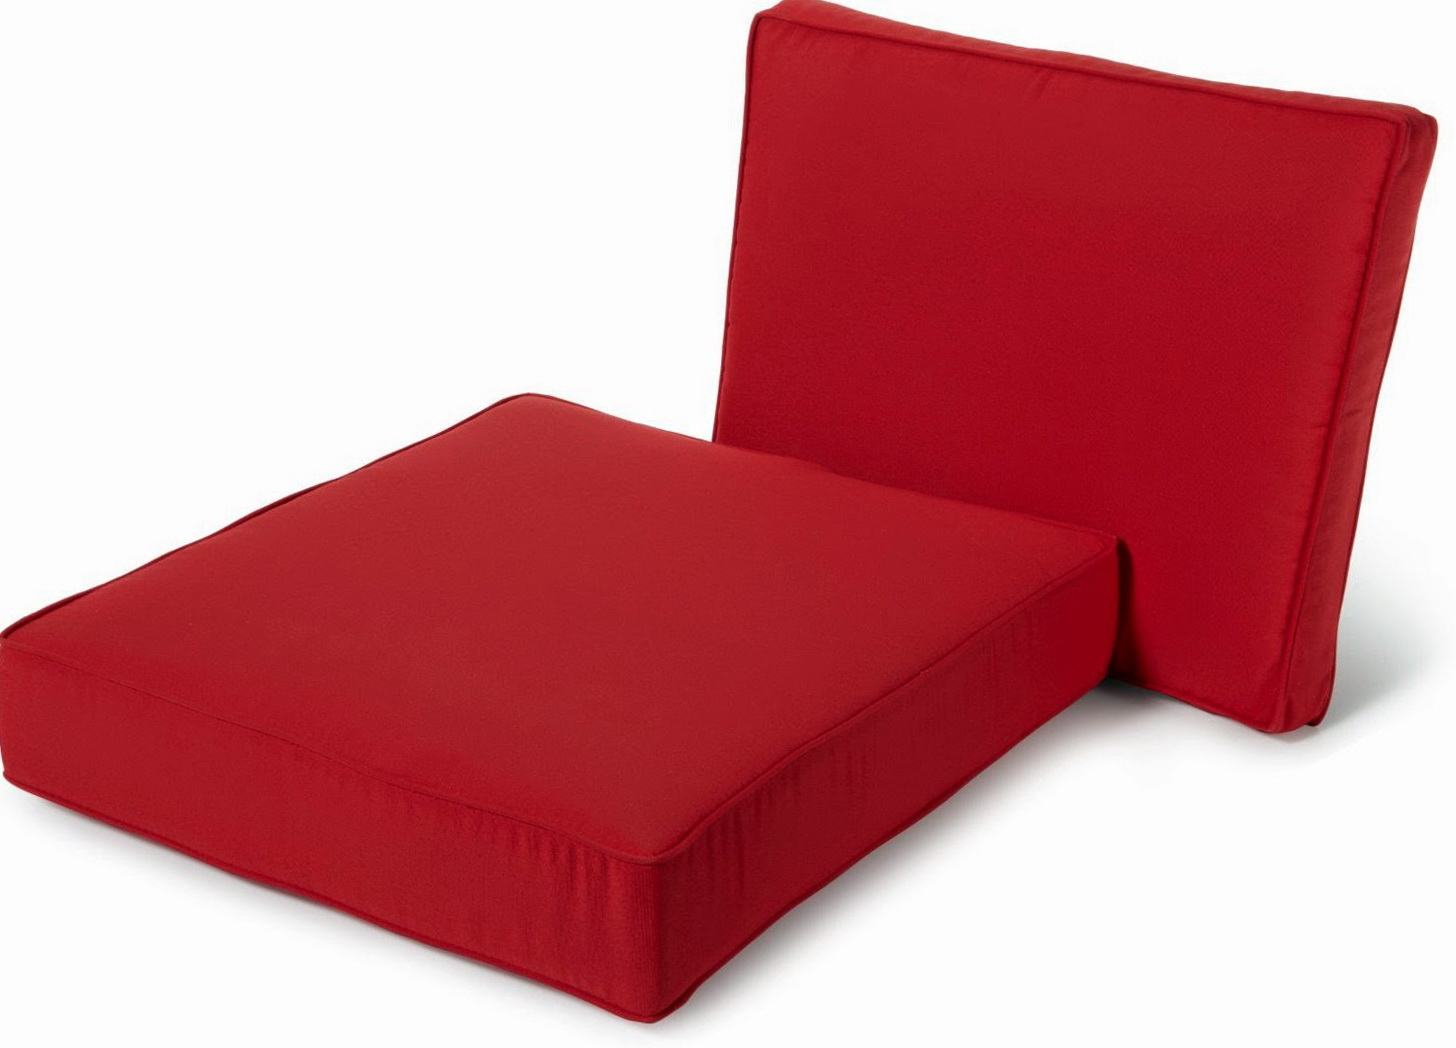 Seat Covers For Sofa Cushions Cushion A